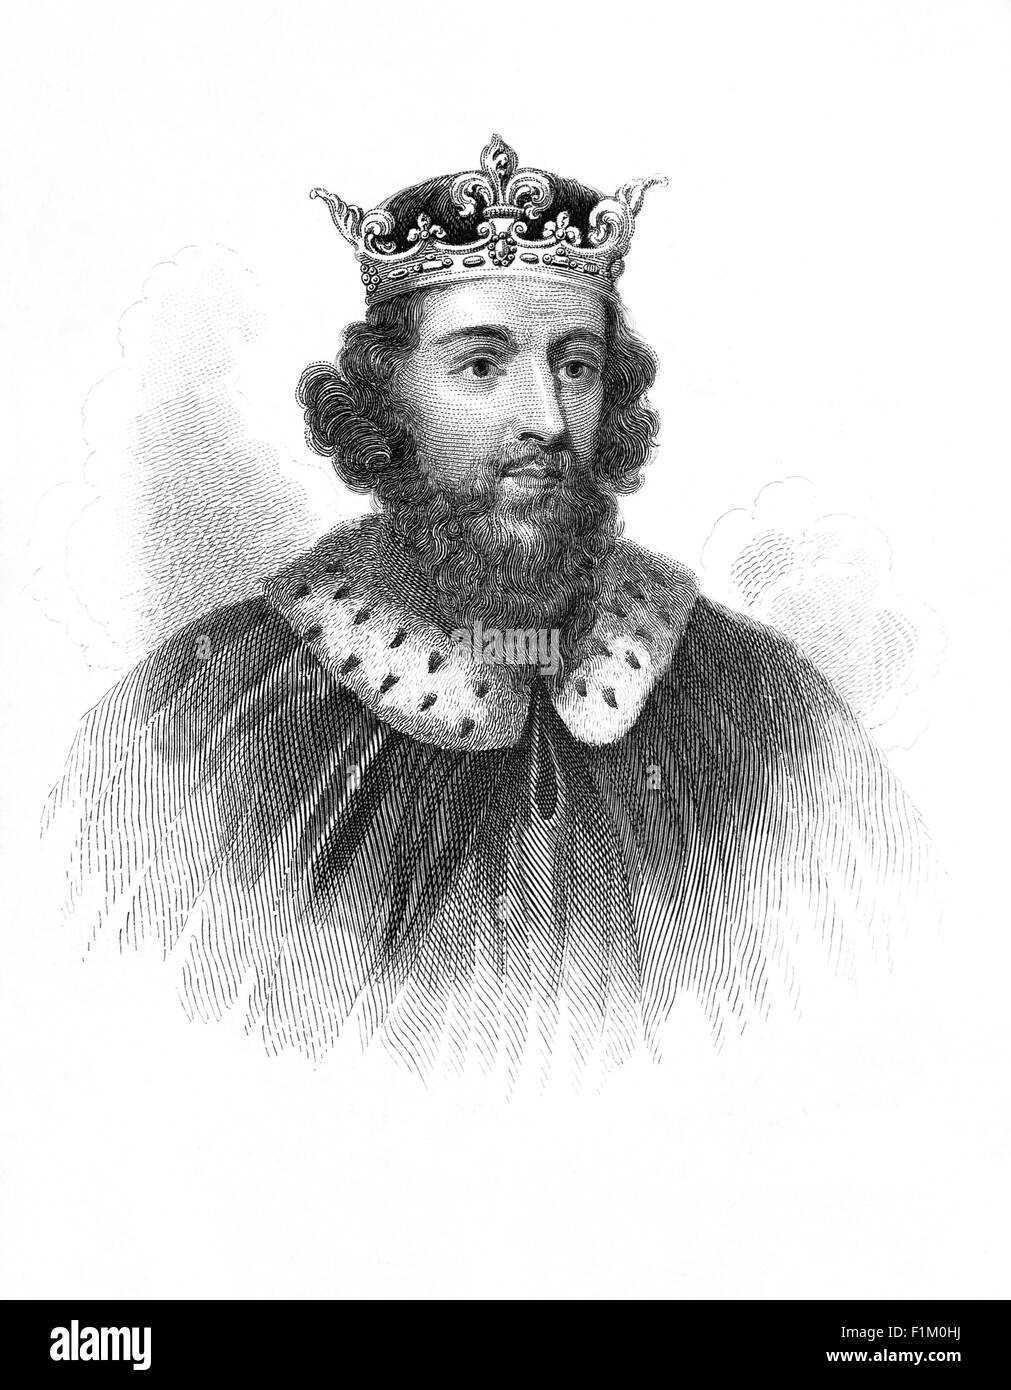 King Alfred (849 – 899 AD) also known as Alfred the Great, considered to be the first King of England. Crowned in - Stock Image